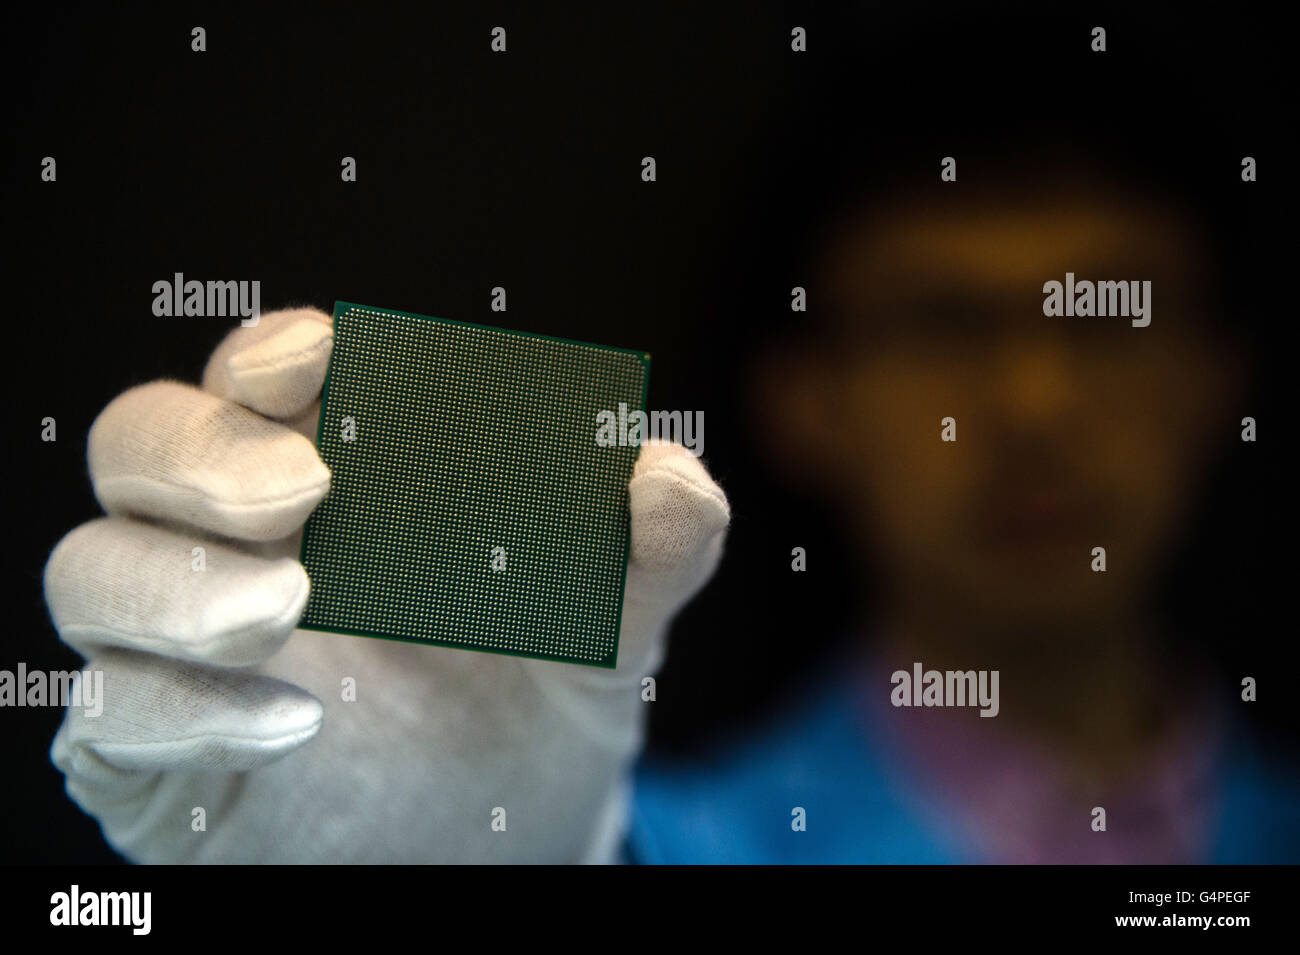 Wuxi, China. 20th June, 2016. An engineer shows the many-core processor of Sunway TaihuLight, a new Chinese supercomputer, - Stock Image